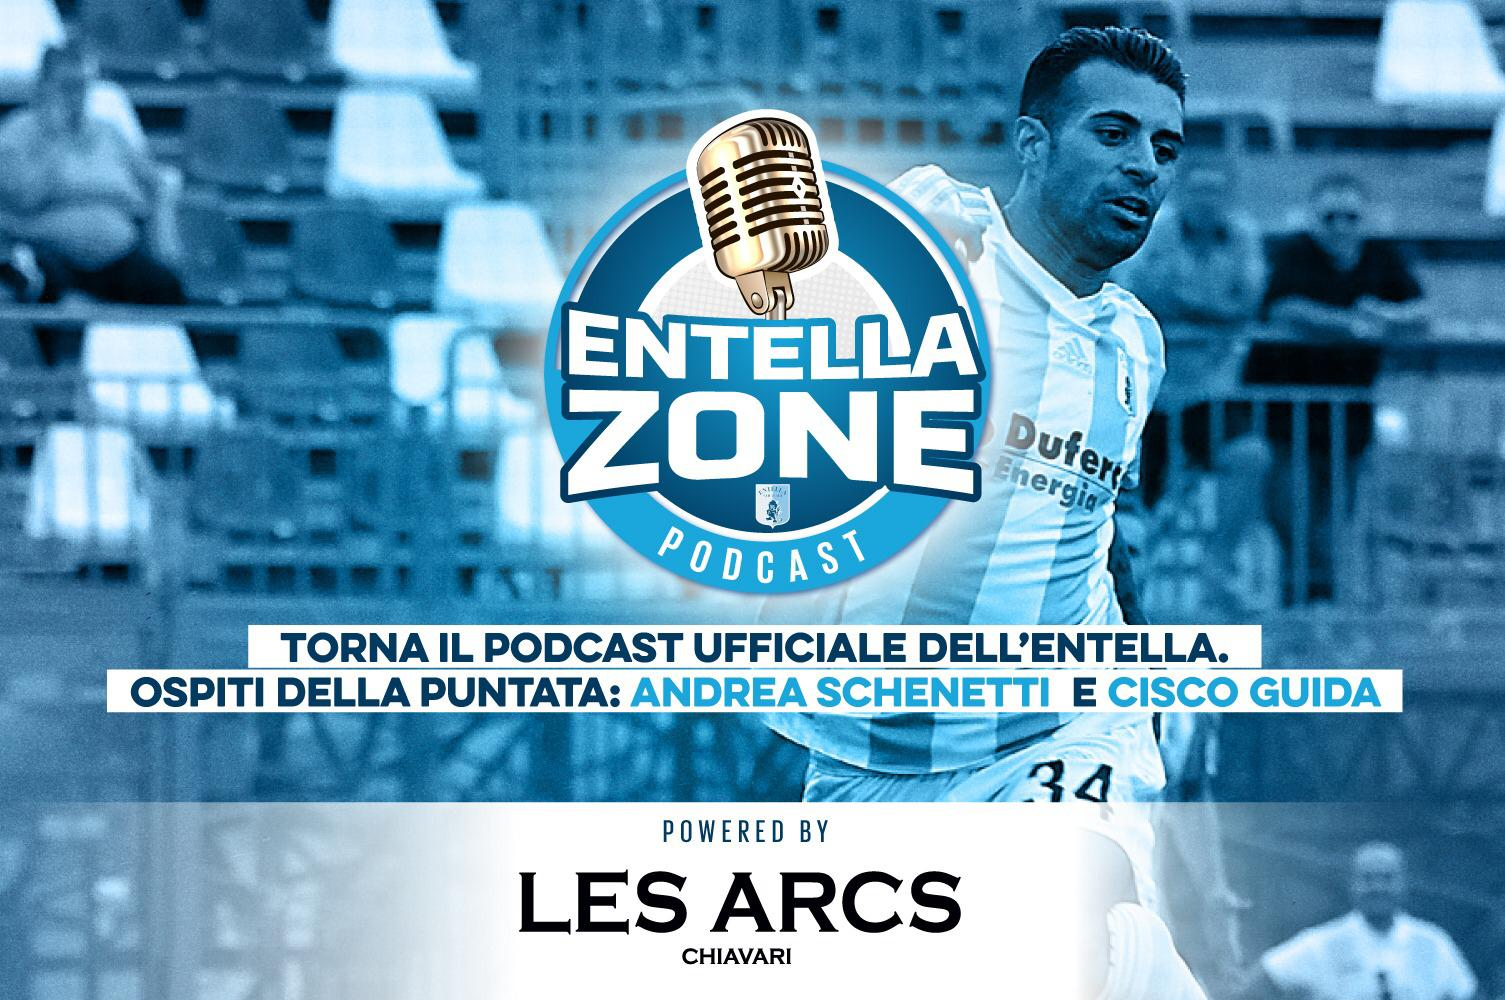 entella zone schenetti